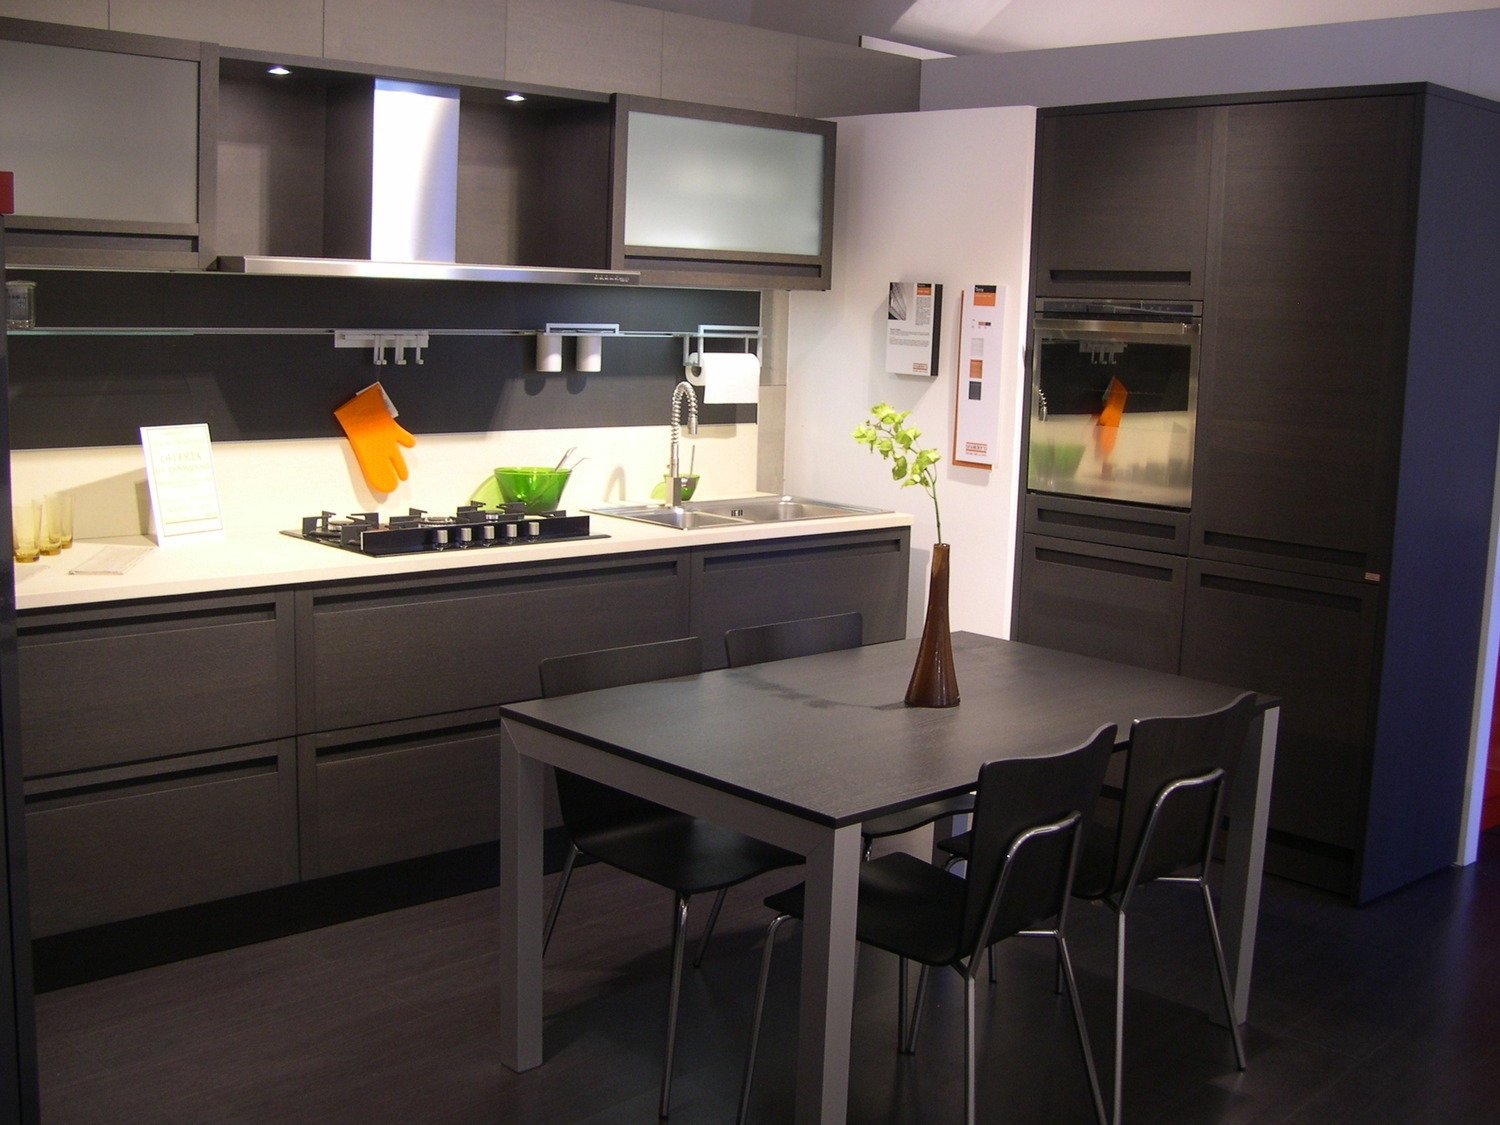 Awesome Cucina Florence Snaidero Images - Design & Ideas 2017 ...